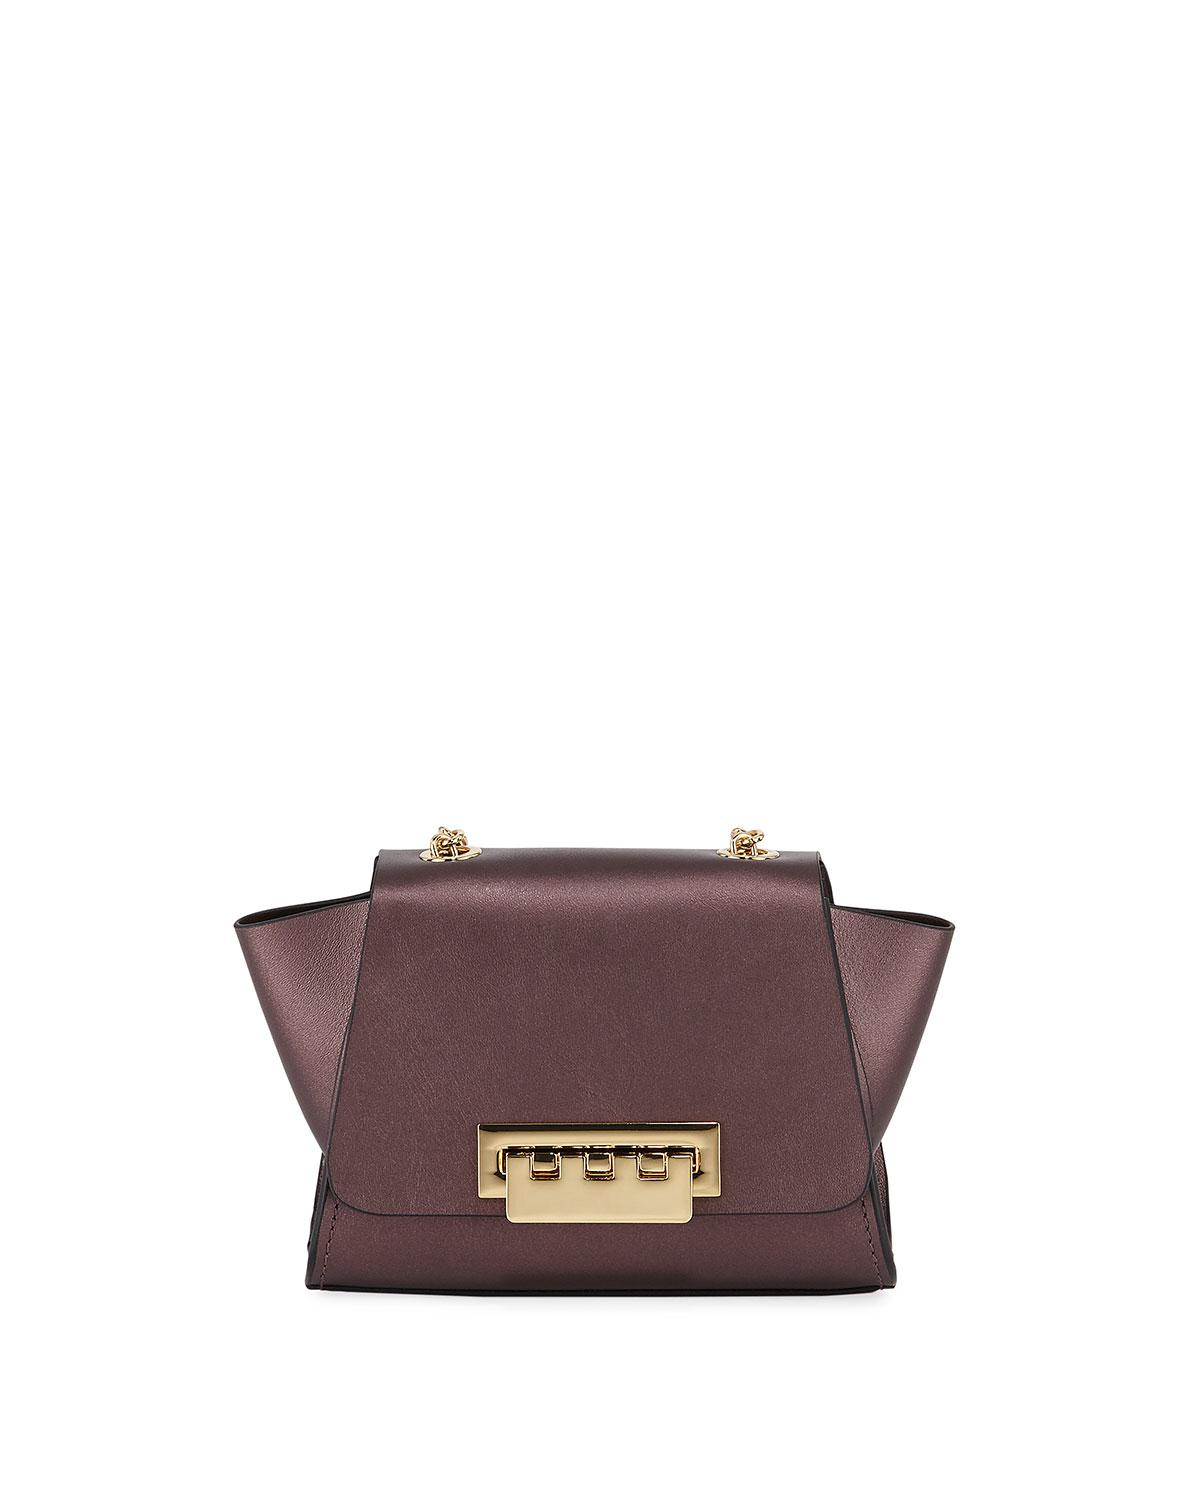 5259e3a4690c Lyst - Zac Zac Posen Eartha Metallic Leather Top-handle Crossbody ...